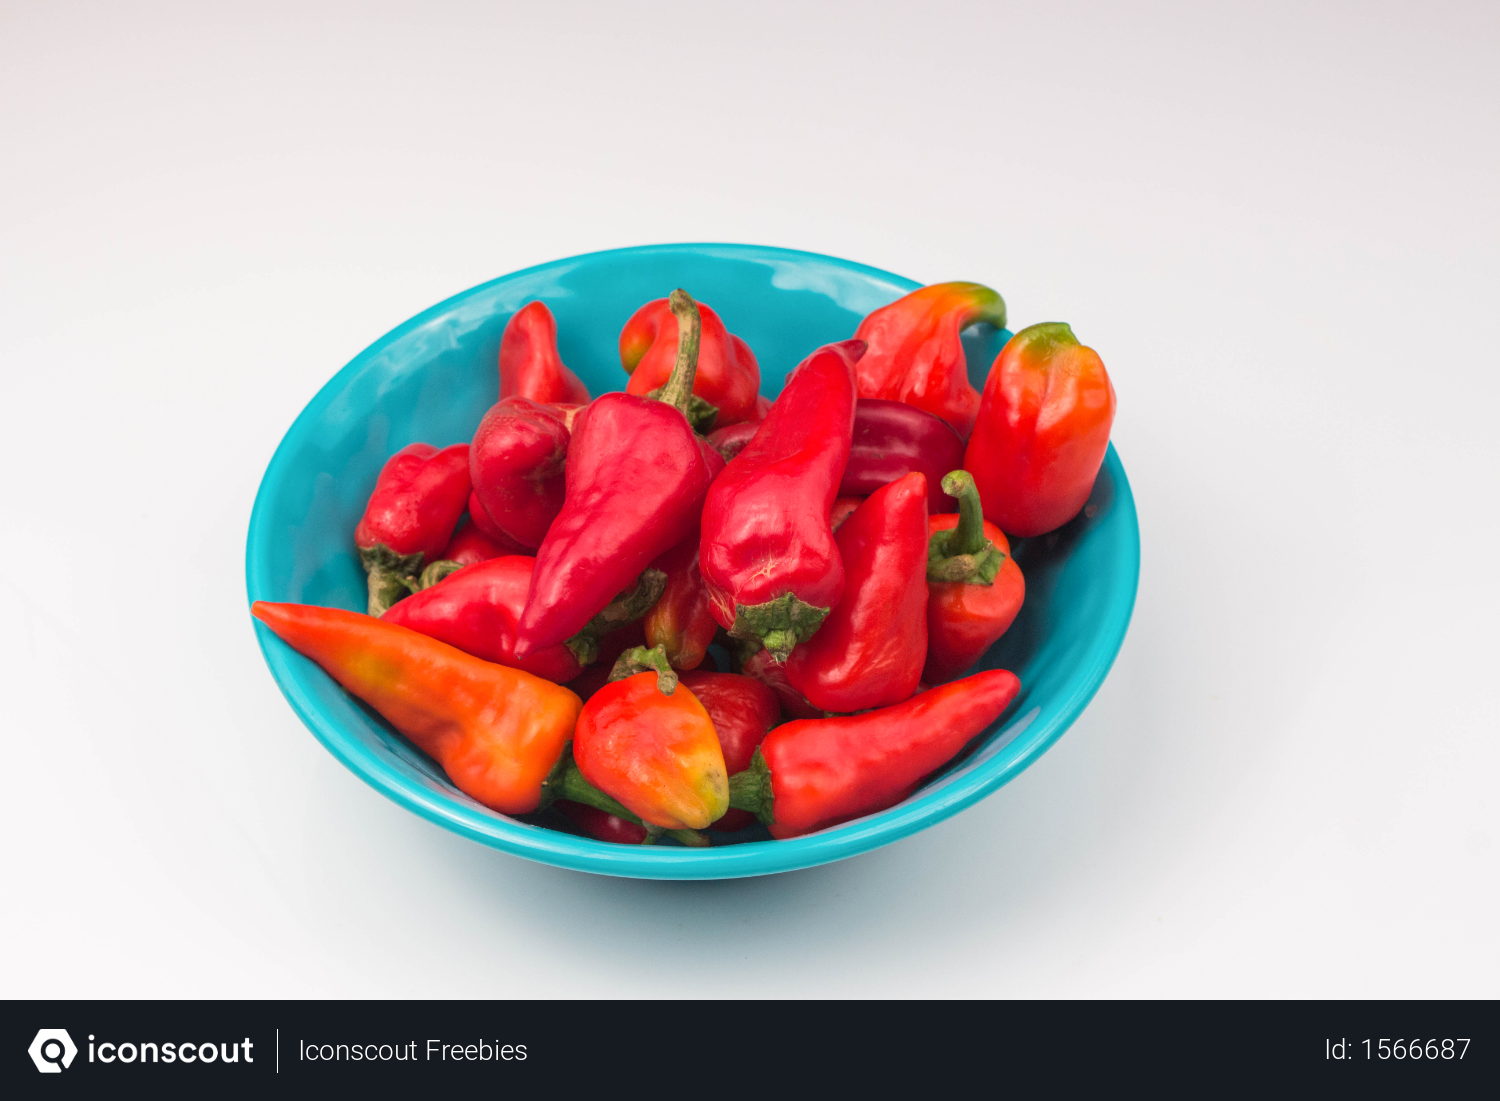 Free Red Chili Peppers Vegetable In Light Blue Bowl Isolated On White Background Photo Download In Png Jpg Format Stuffed Peppers Light Blue Bowls Blue Bowl